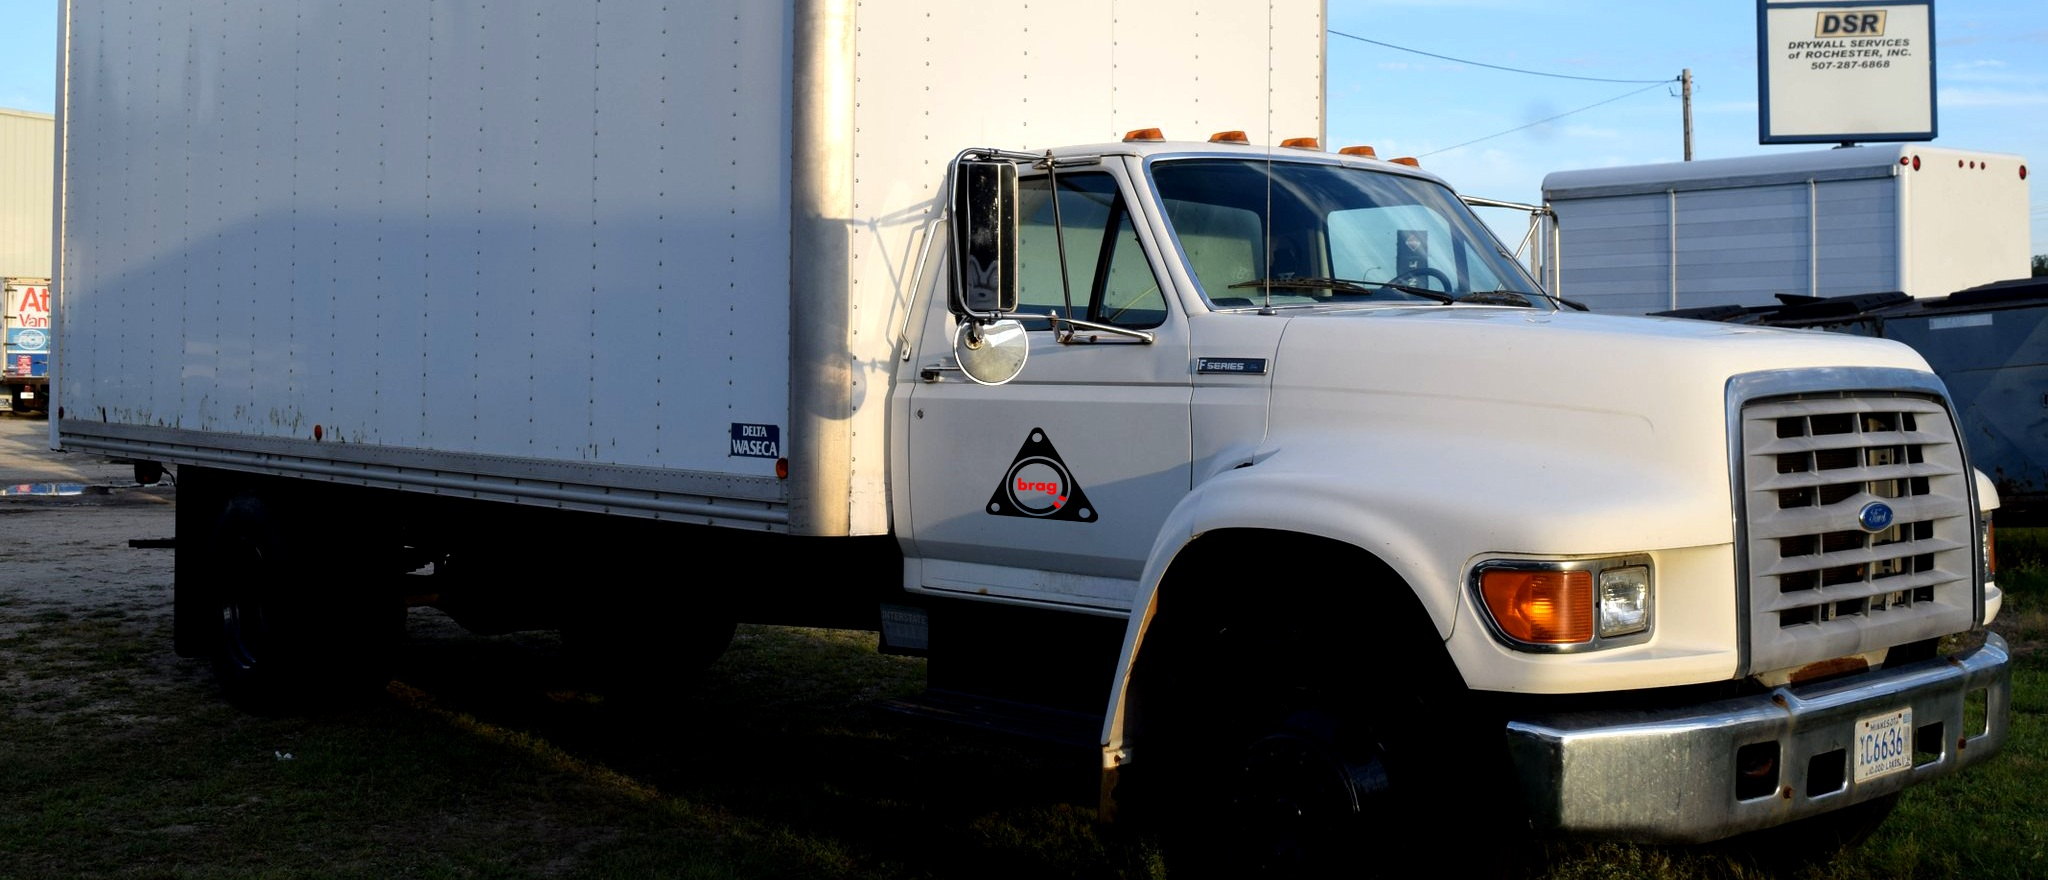 Scheduled Daily Deliveries -